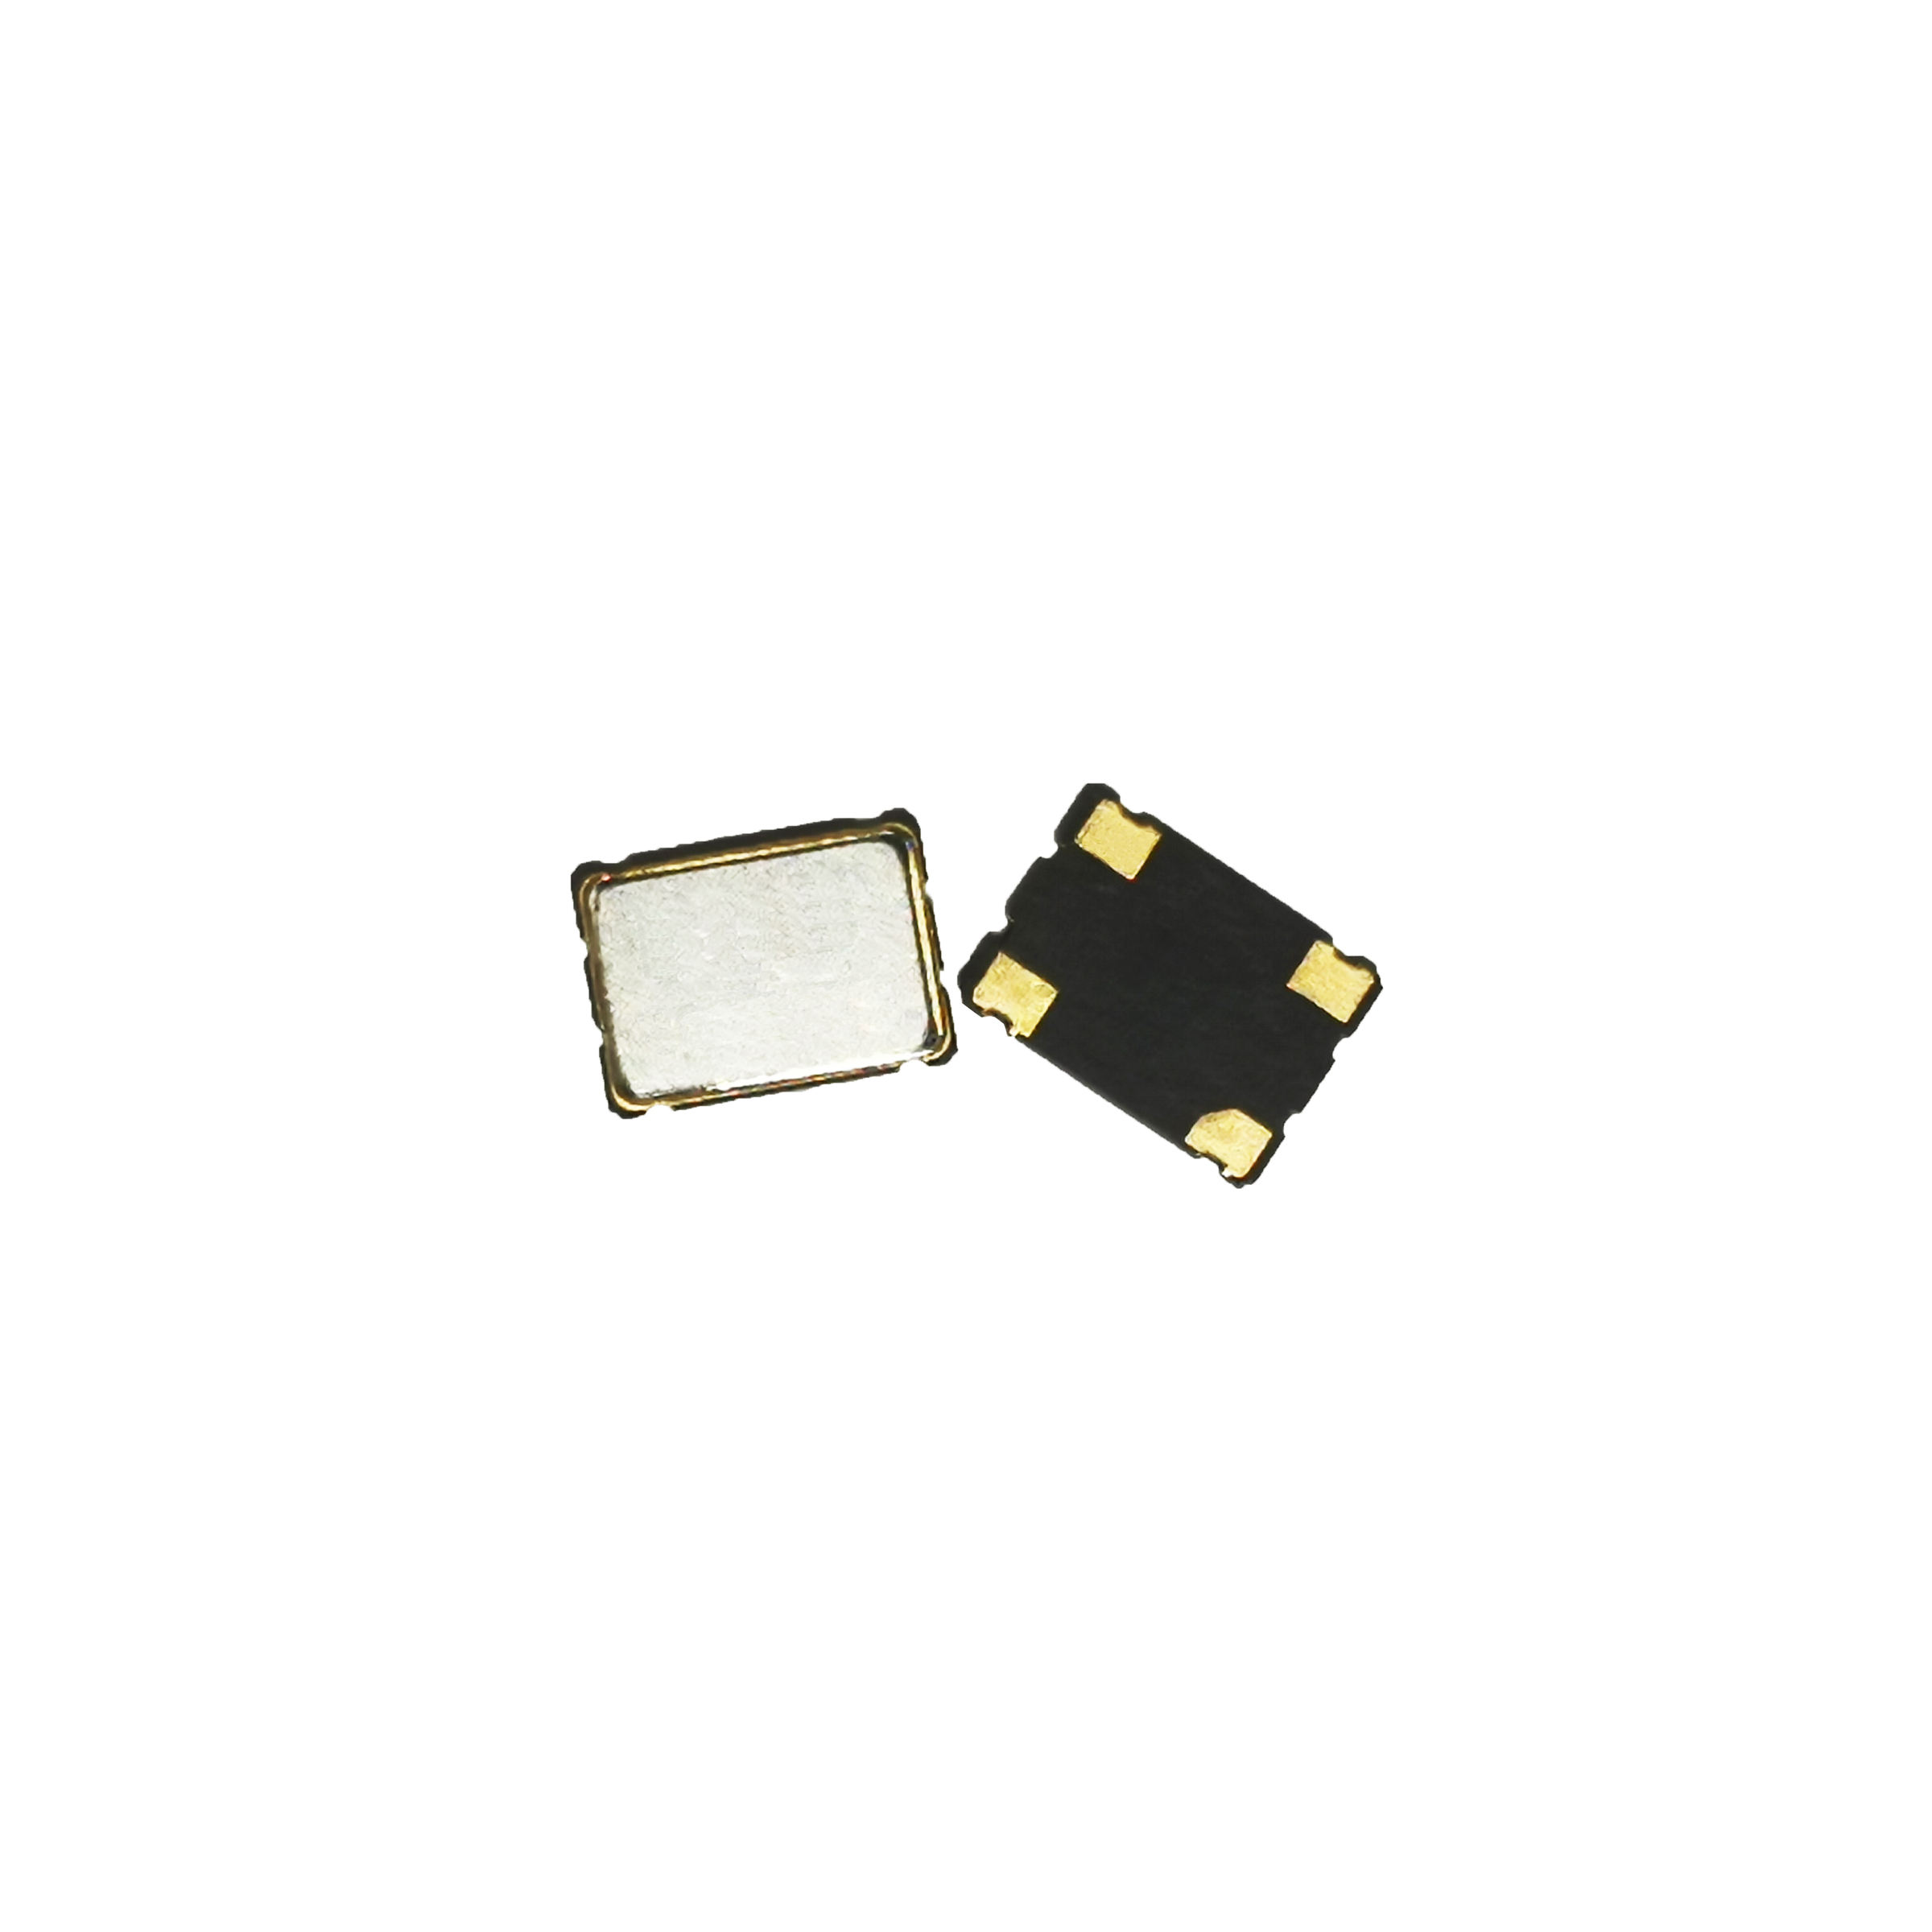 Good Quality SMD 5070OSC 16MHZ Crystal Oscillator